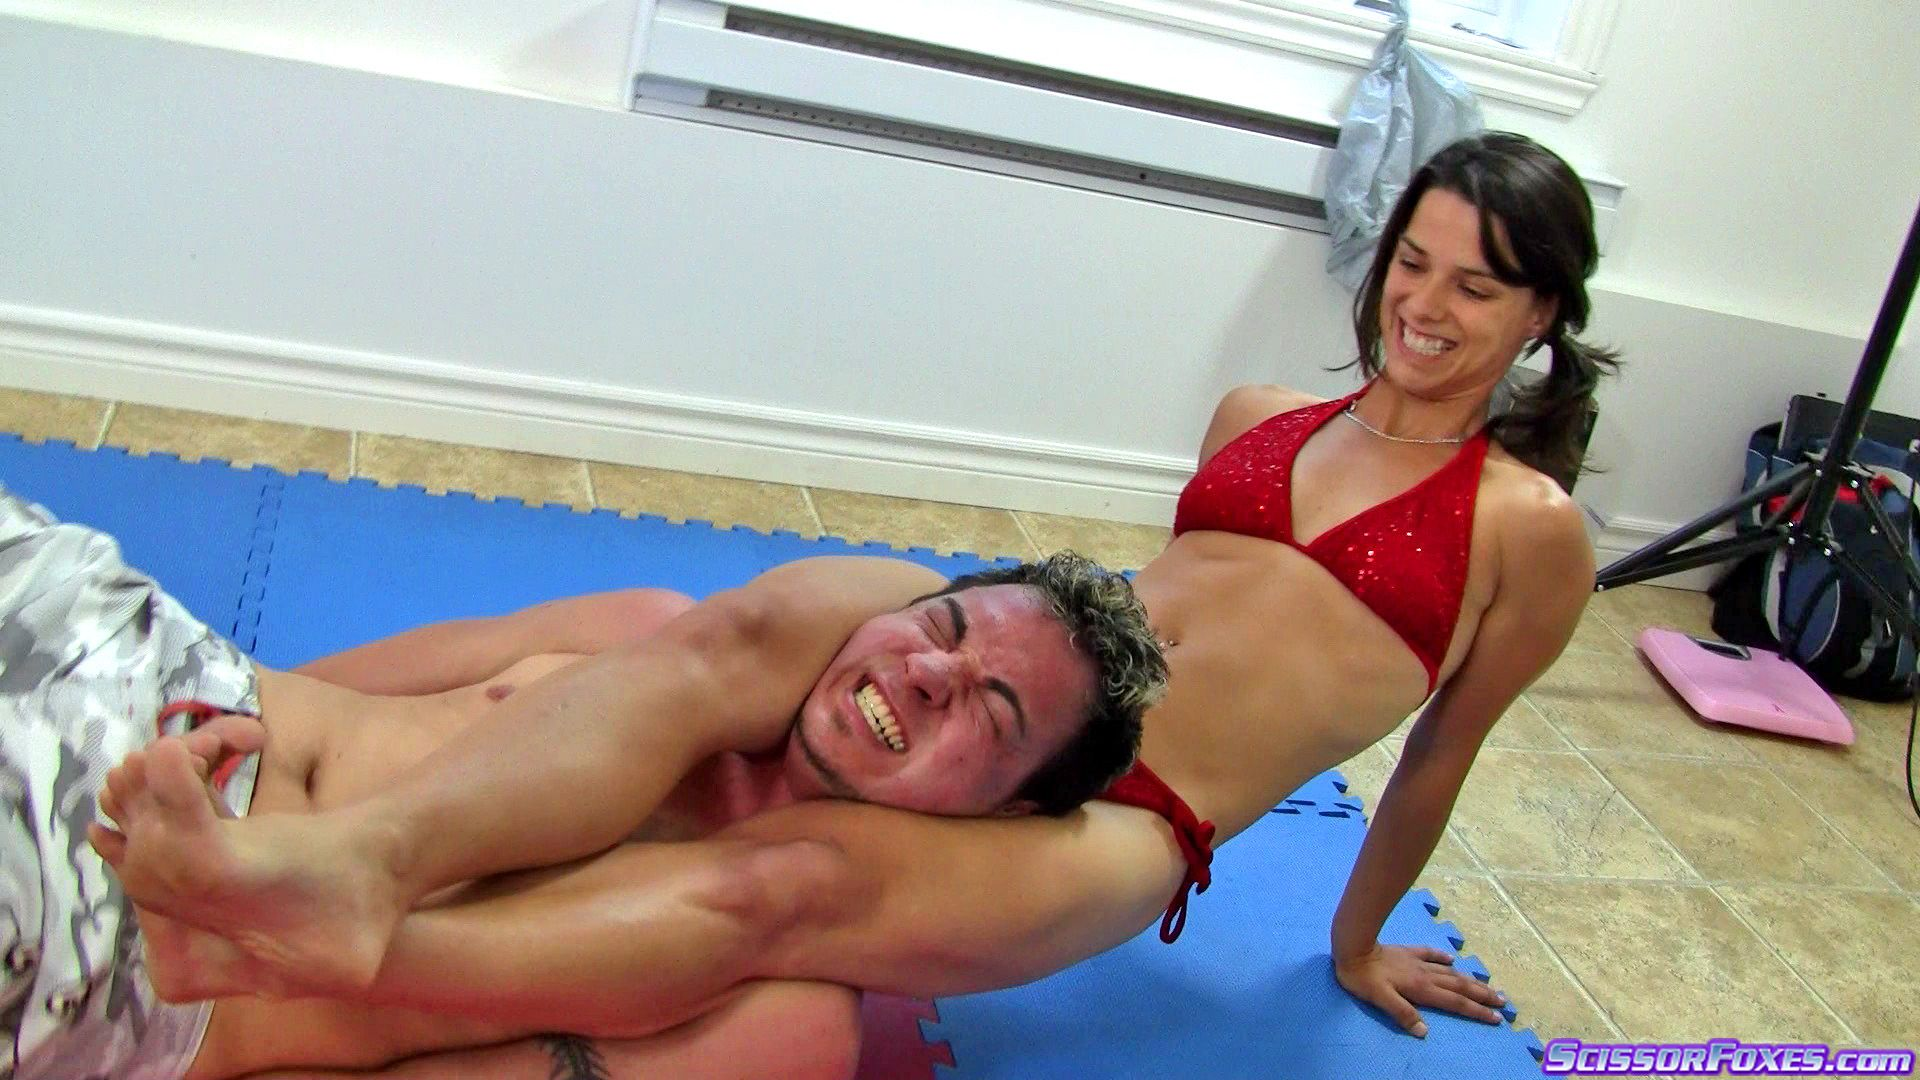 Face Sitting Mixed Wrestling